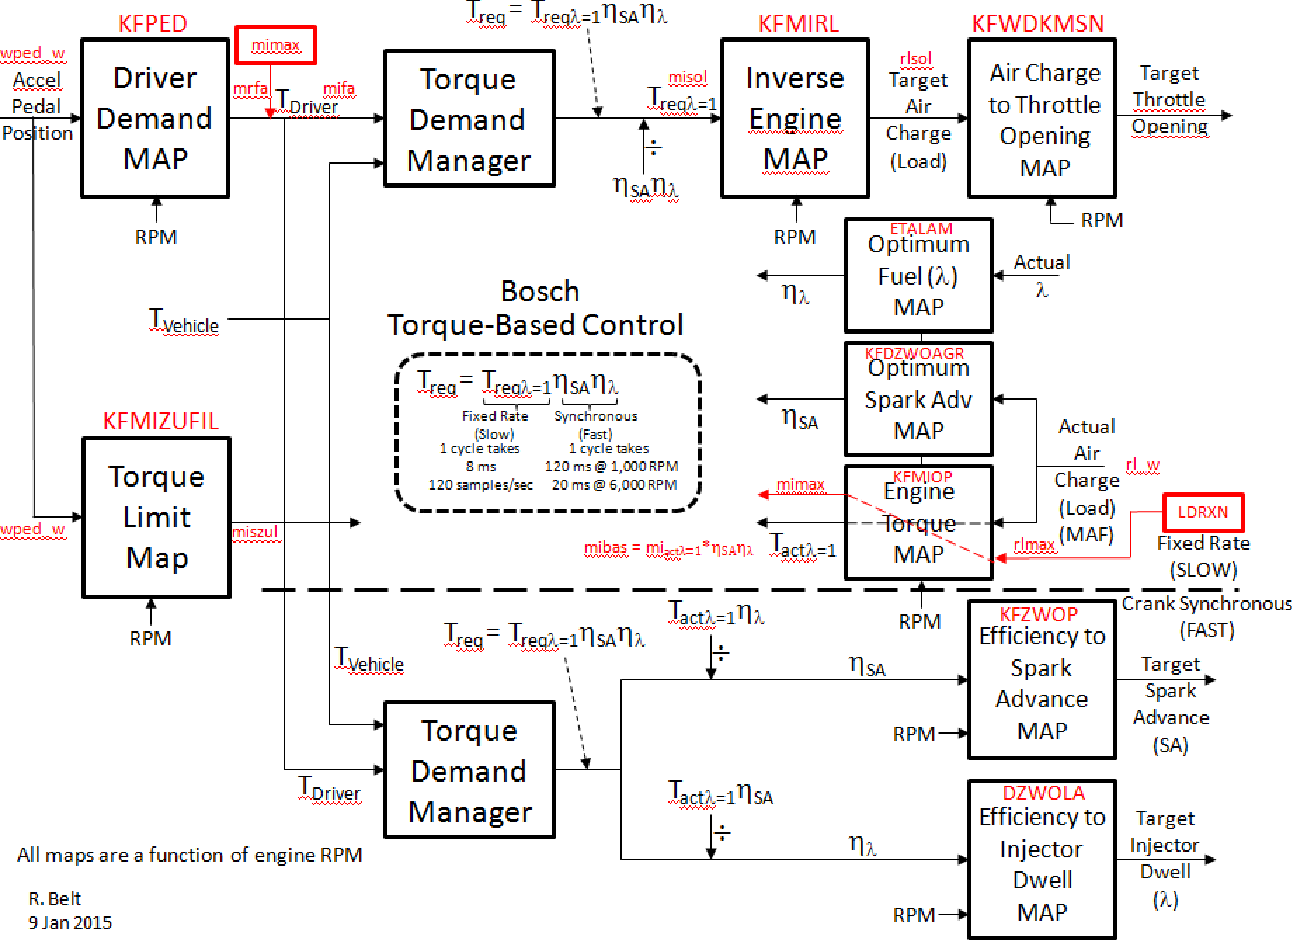 Figure 6. Bosch torque-based controller showing functions associated with intervention